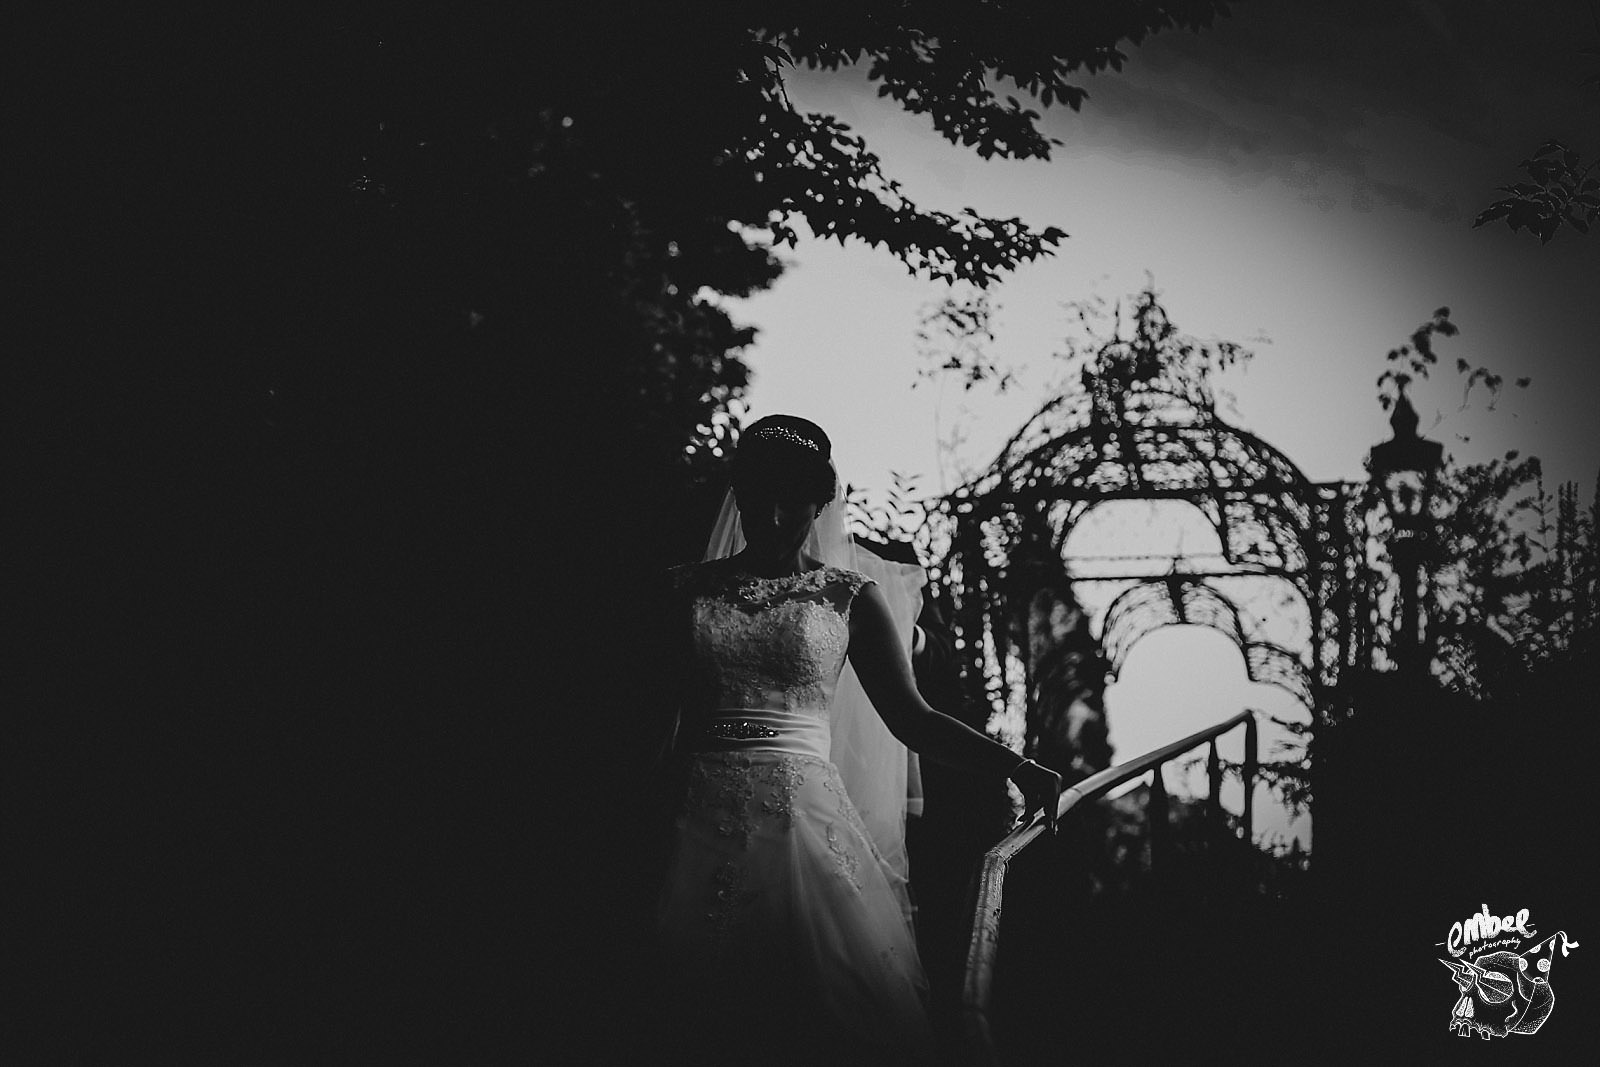 artistic shot of bride walking down some stairs